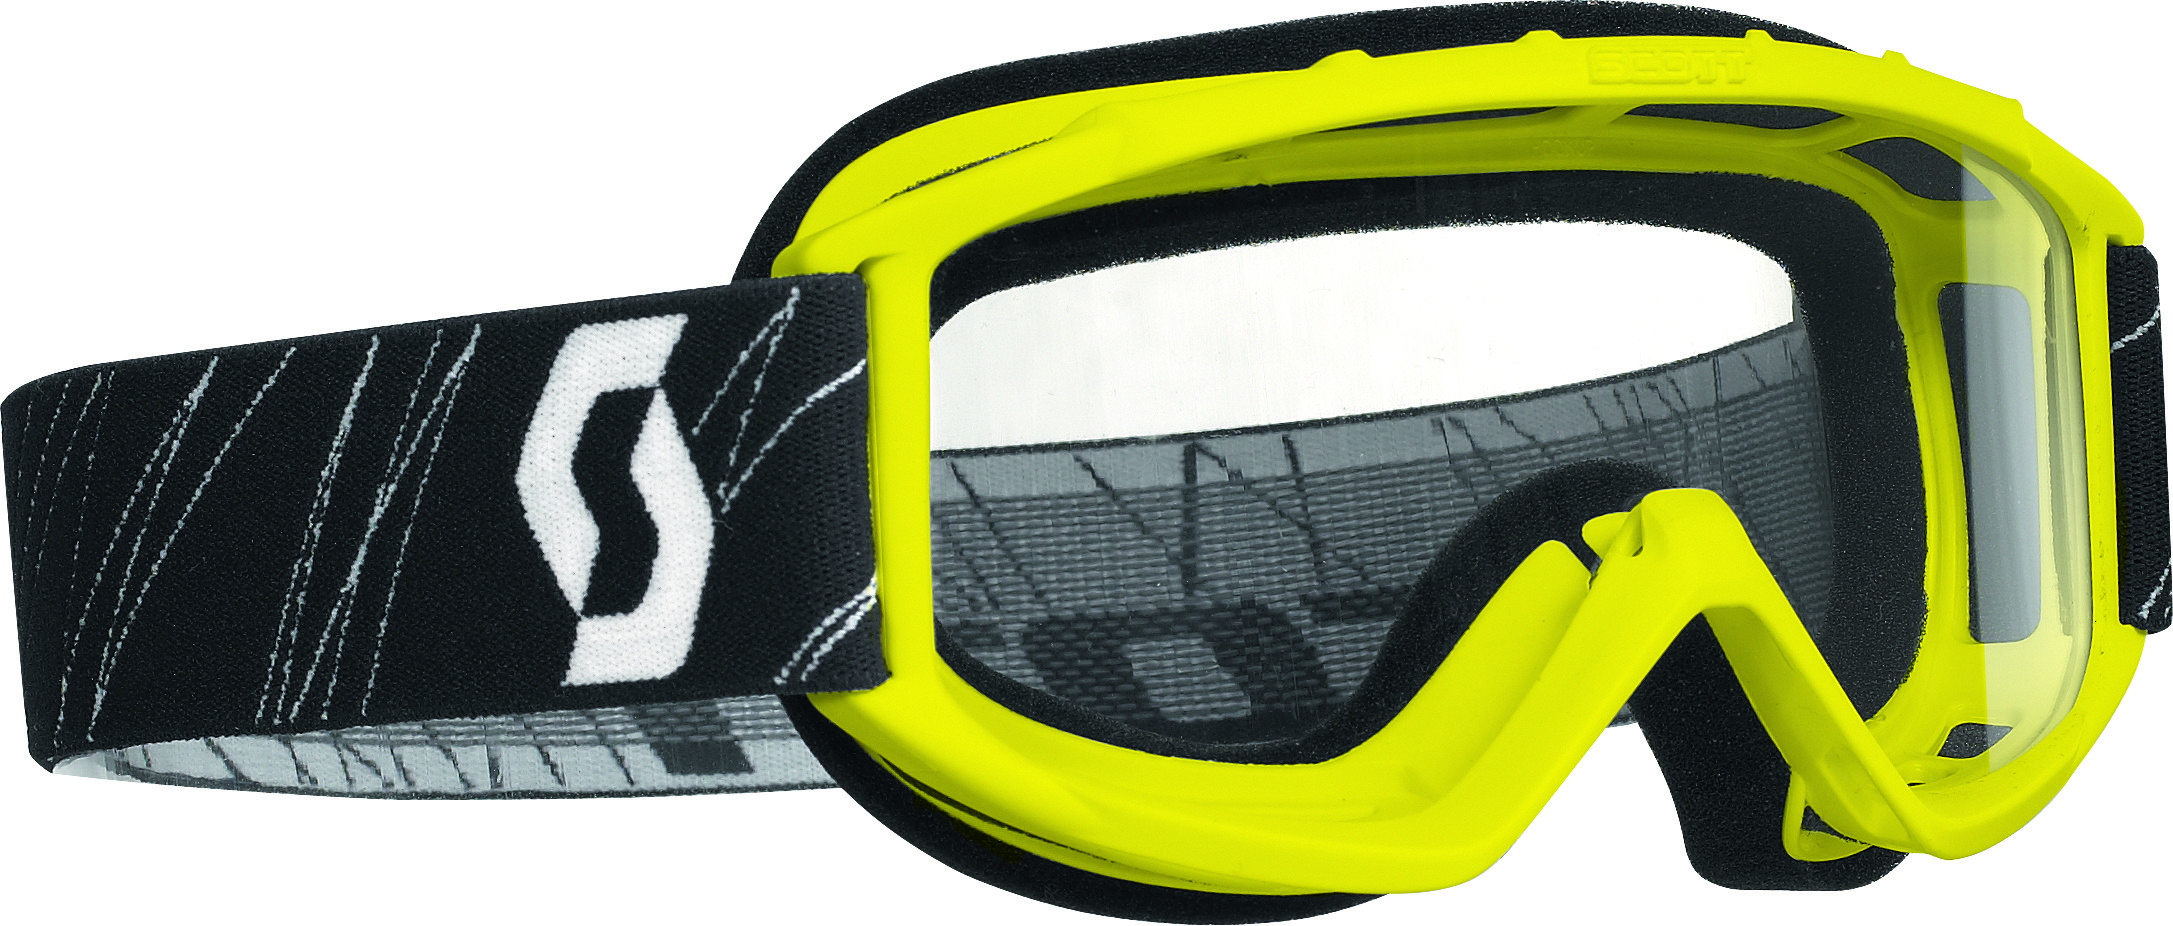 Youth 89Si Goggle Yellow